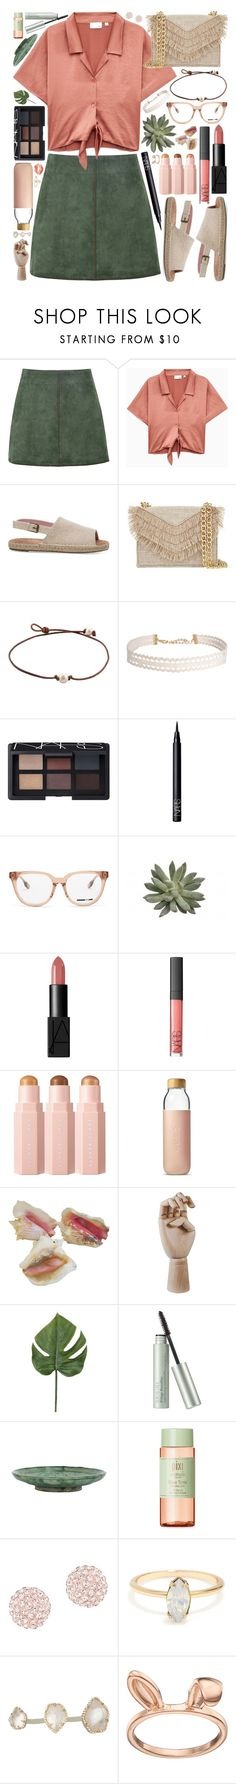 """""""{we're just making waves}"""" by kk-purpleprincess ❤ liked on Polyvore featuring George J. Love, TOMS, Cynthia Rowley, Humble Chic, NARS Cosmetics, Alexander McQueen, Soma, HAY, Origins and Jayson Home"""